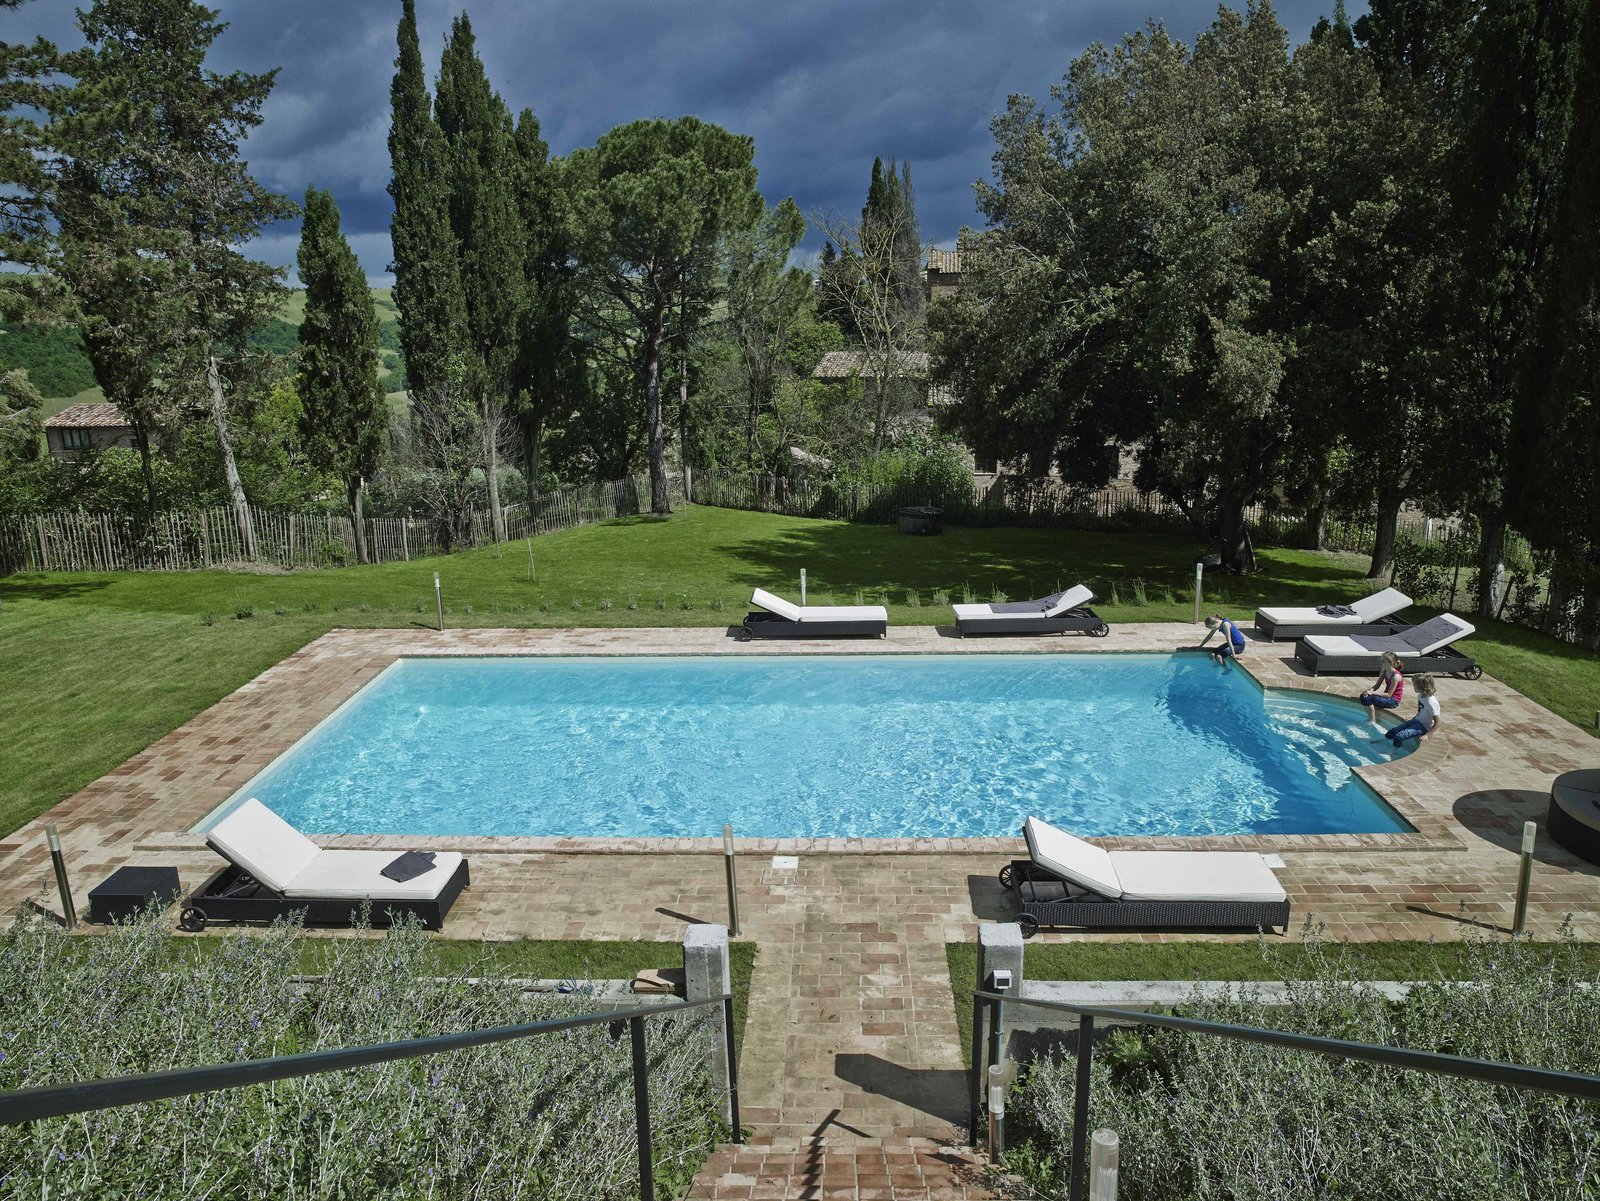 Outdoor, Back Yard, Grass, Swimming Pools, Tubs, Shower, Large Pools, Tubs, Shower, Vertical Fences, Wall, and Trees  Photo 3 of 11 in Stay in a Modern, Industrial Home That's Hidden Inside a Traditional Tuscan Villa